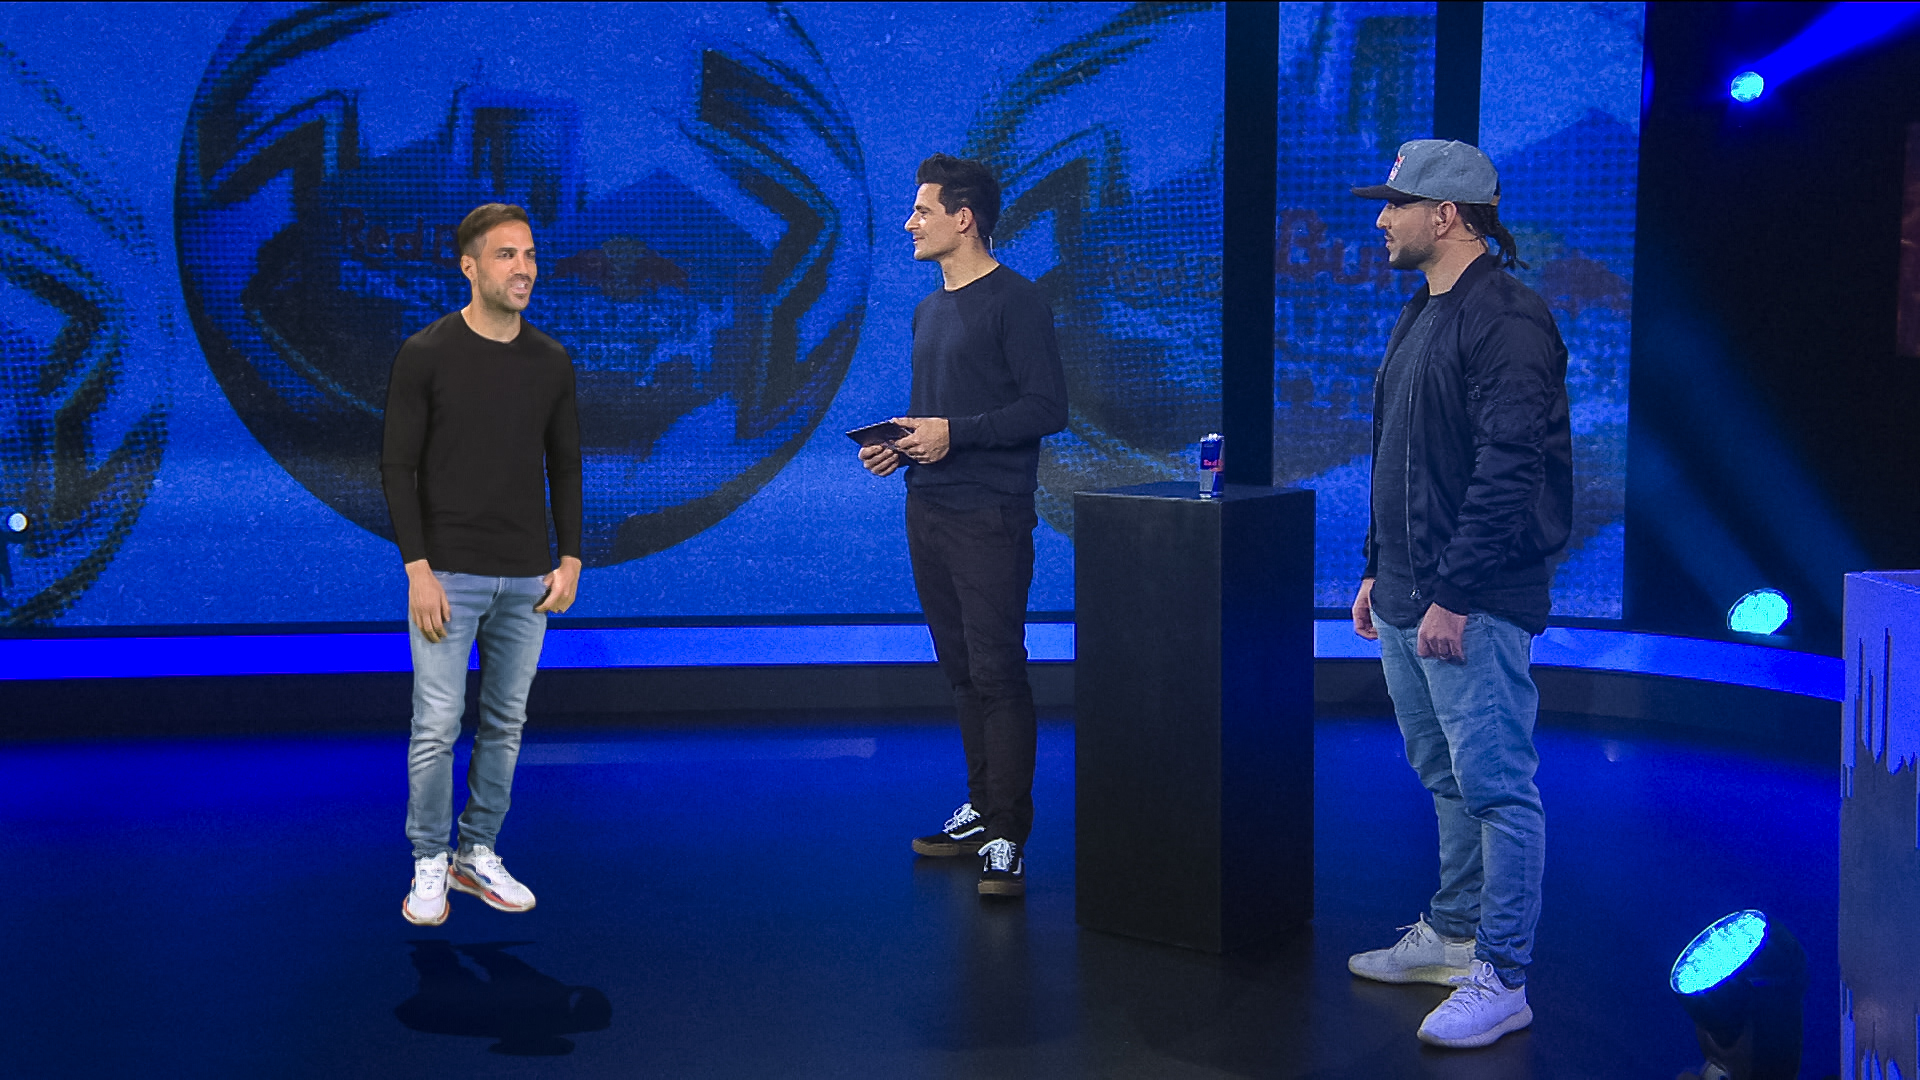 World Cup winner Cesc Fabregas appears as a hologram to judge Freestyle World Championship